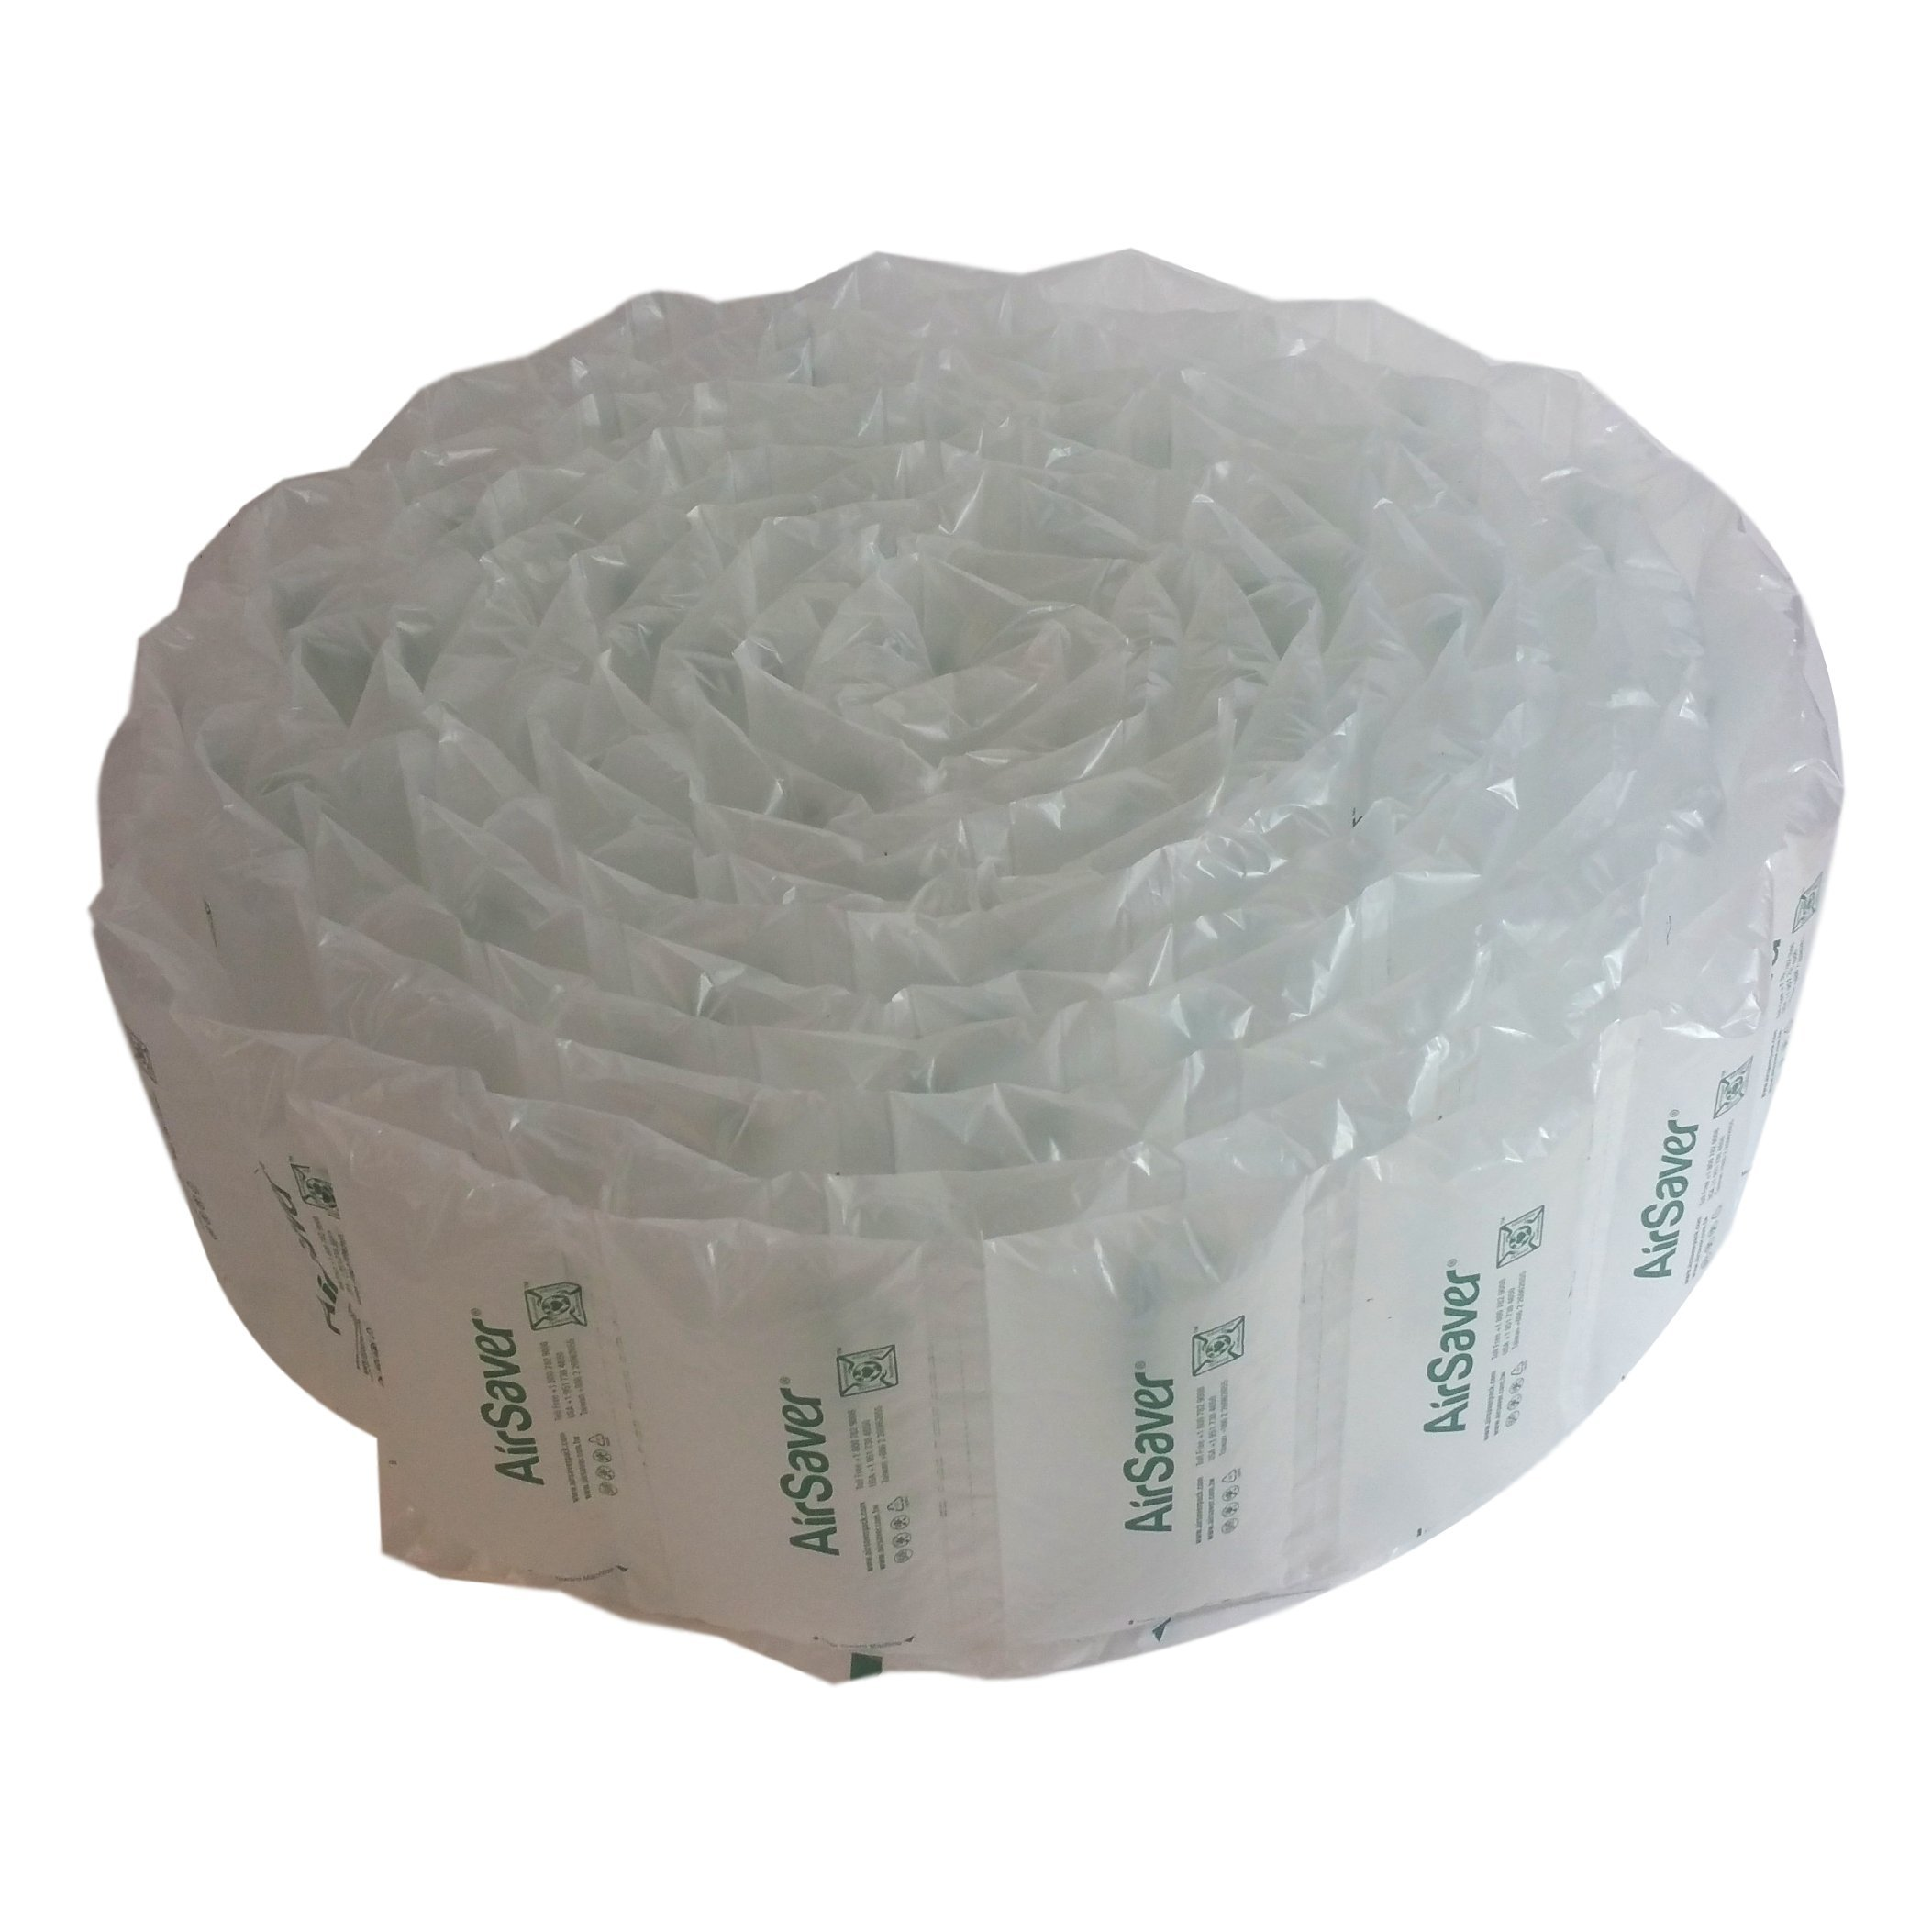 4x8 Air Pillows Green Eco Friendly Void Fill Cushioning for Shipping and Packaging